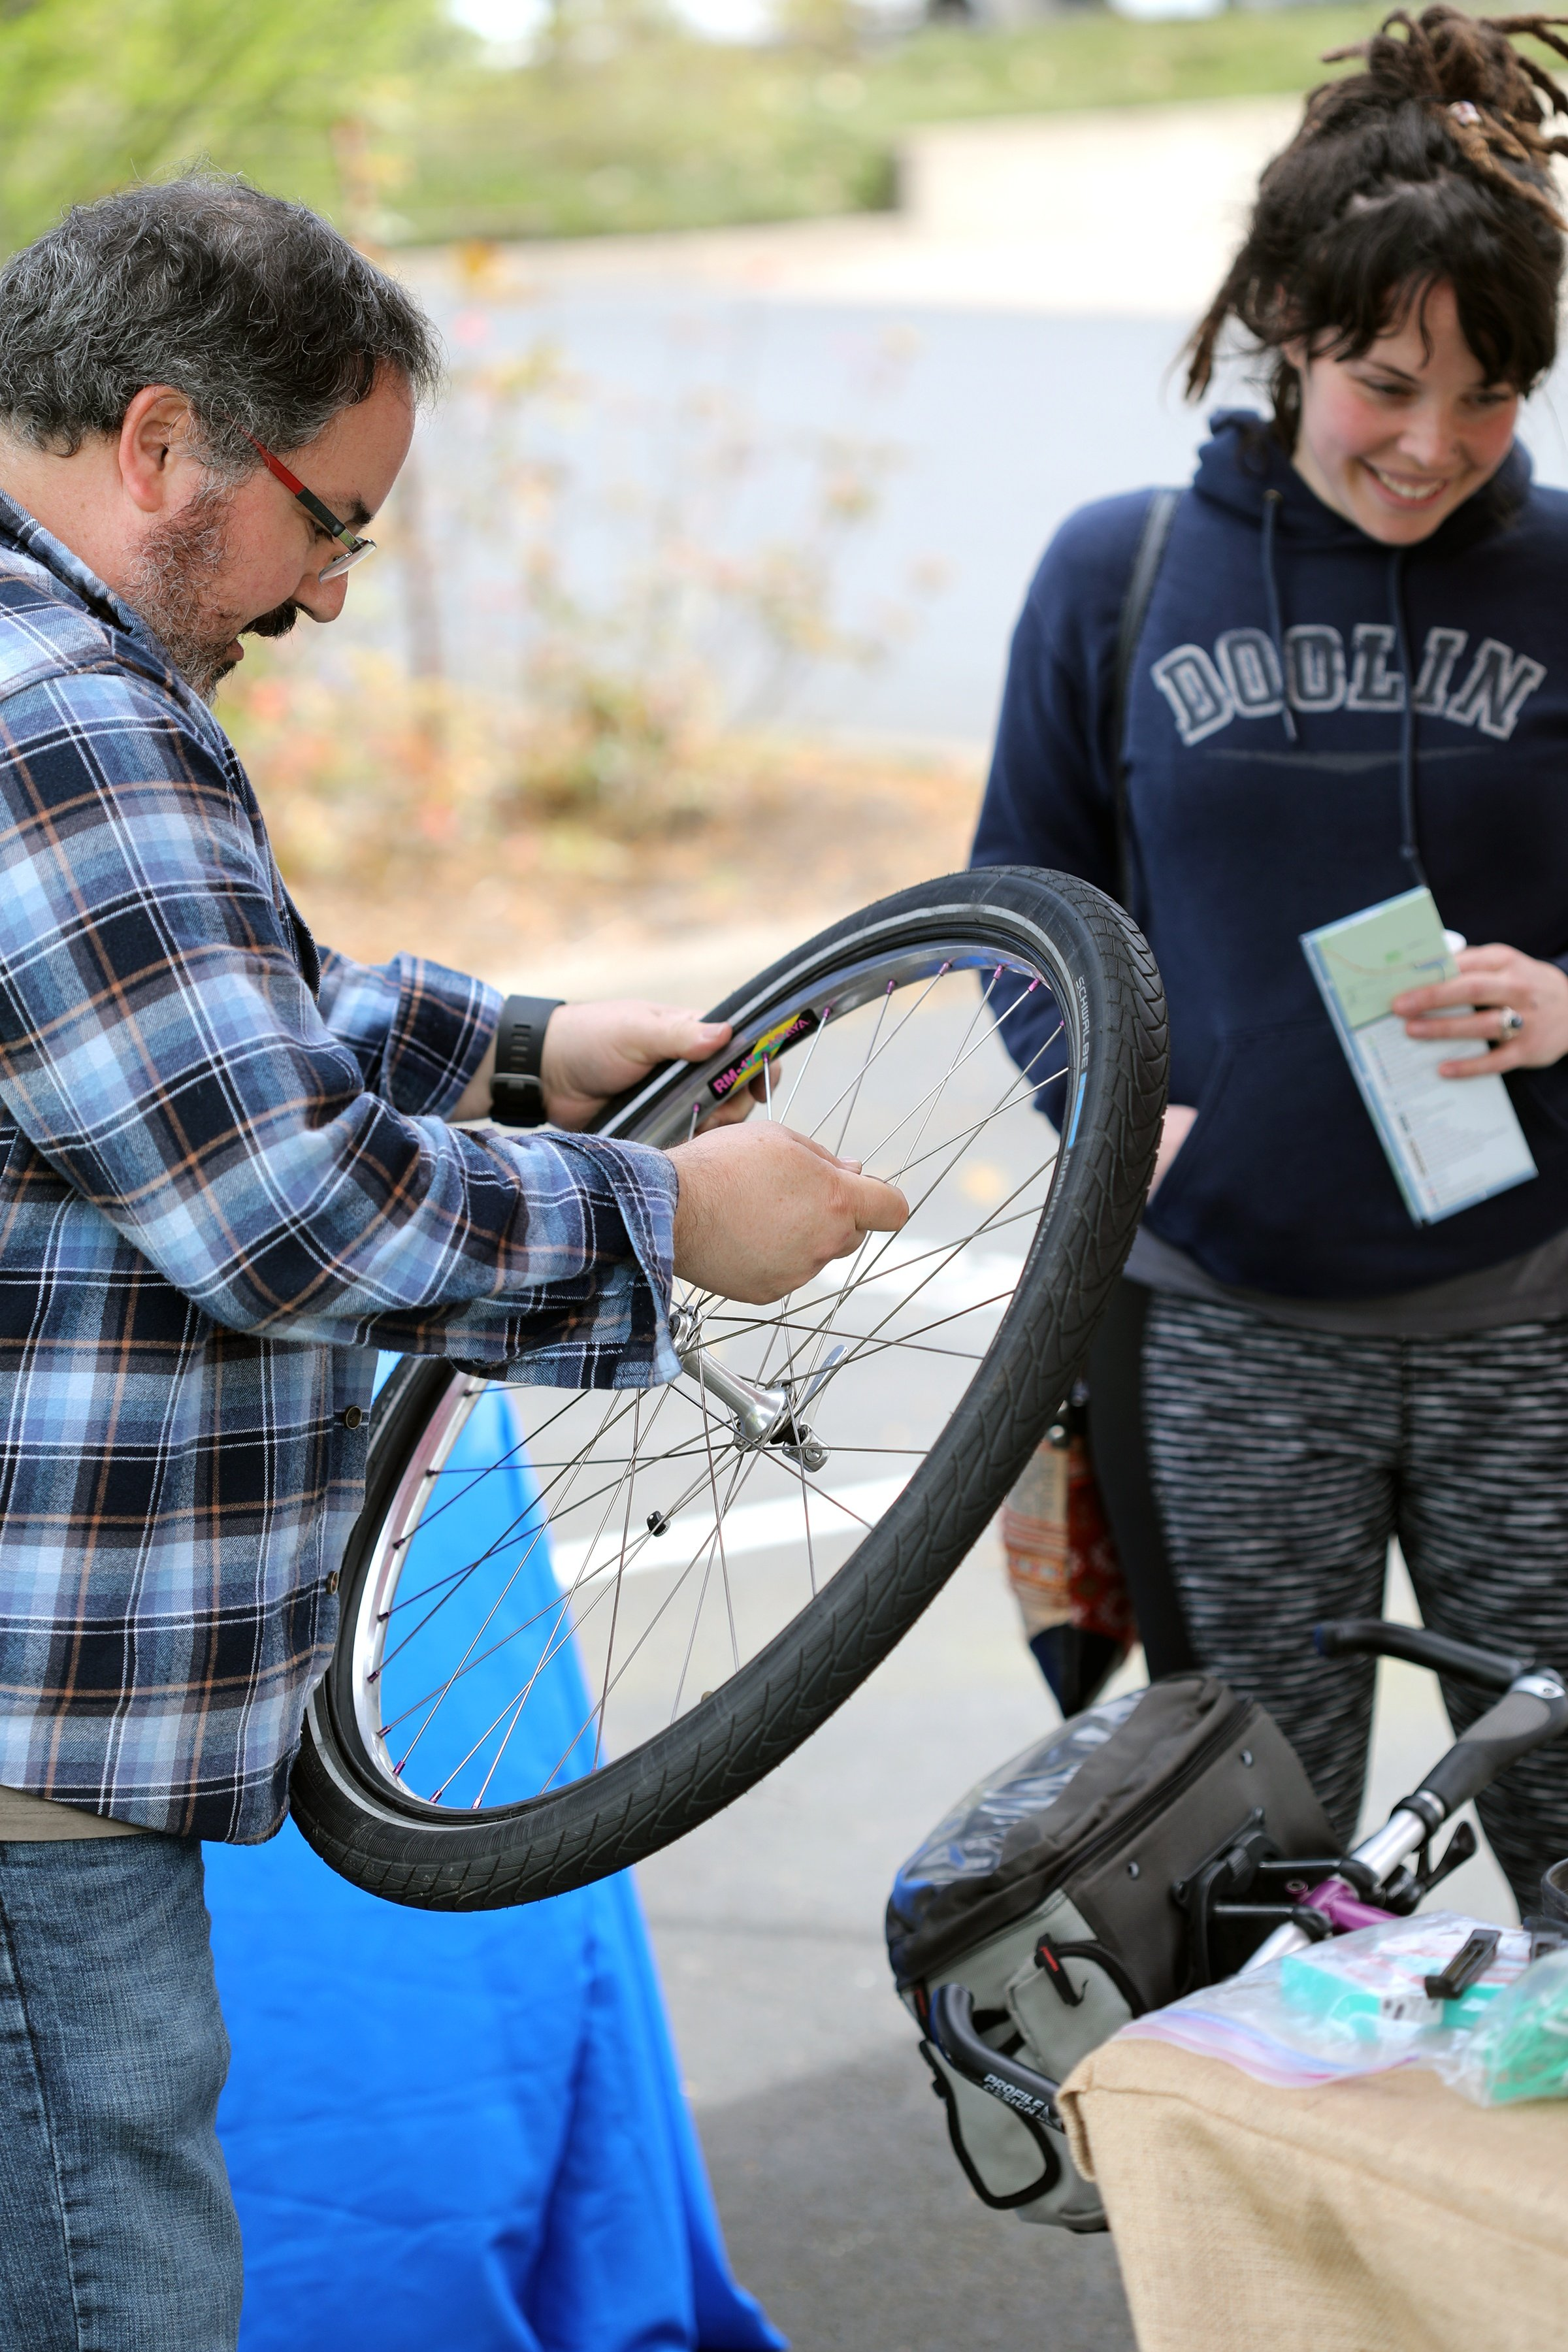 MRH employee with hands on bike wheel for safety check and bike tune up